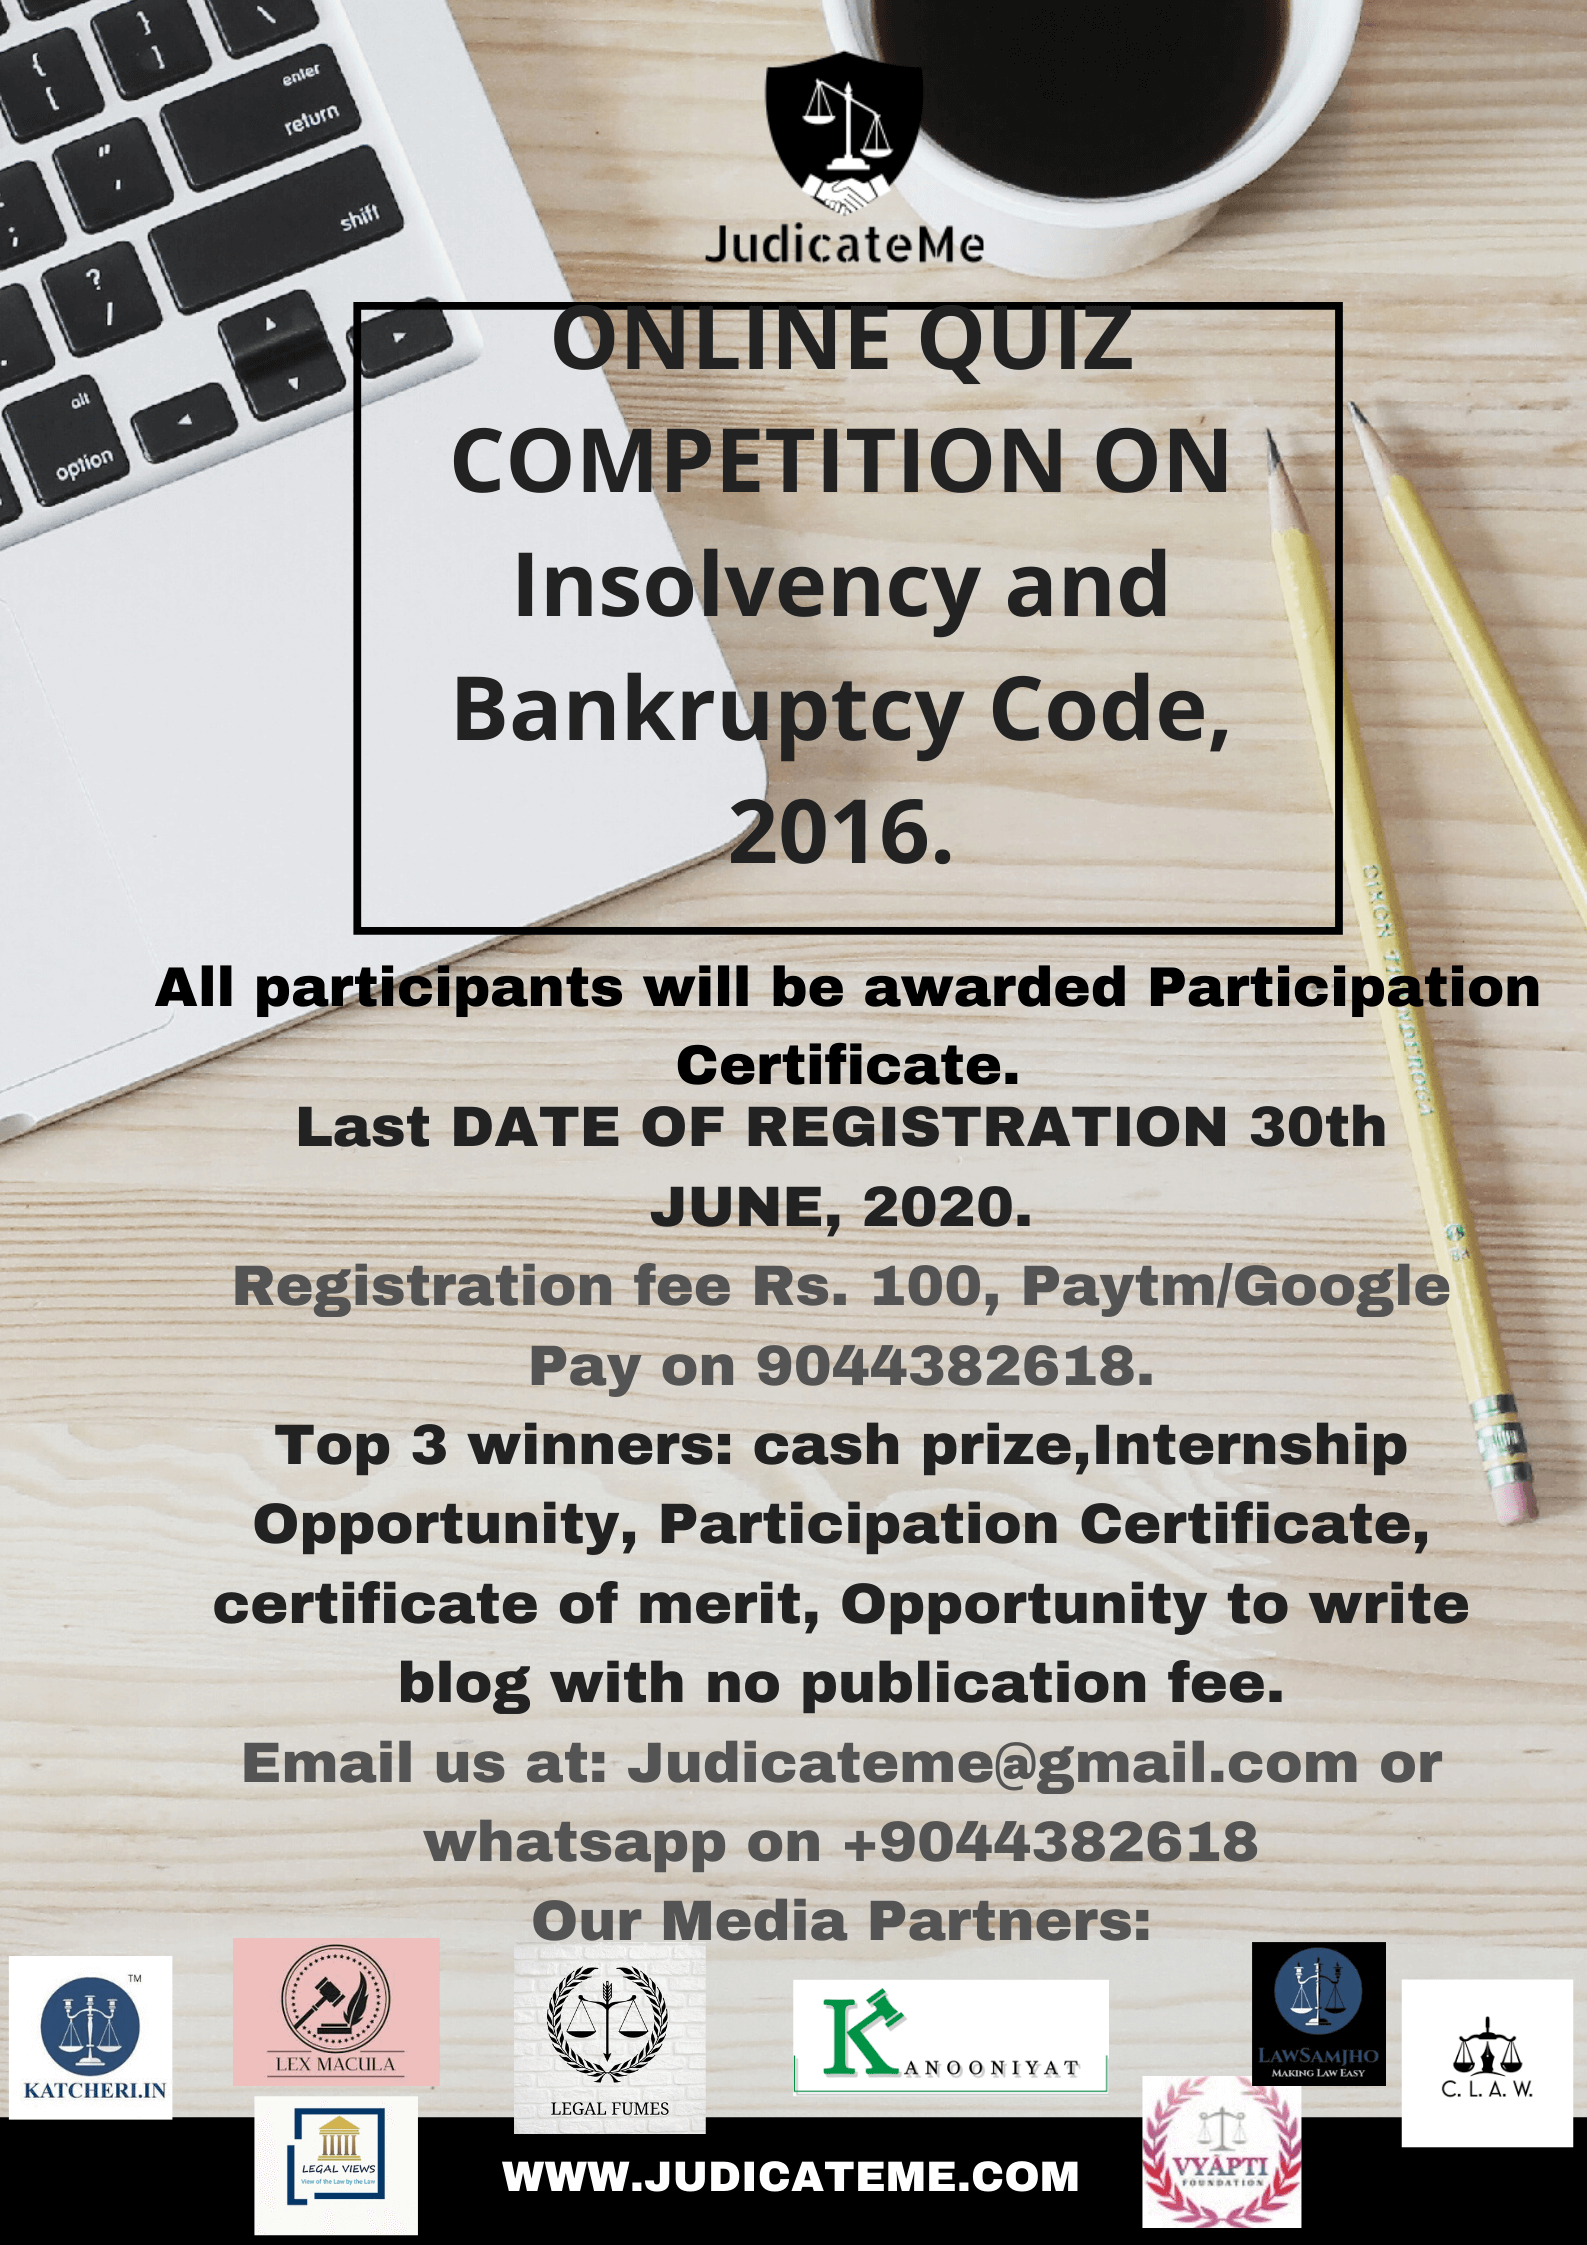 Result for Online Quiz Competition on IBC, 2016